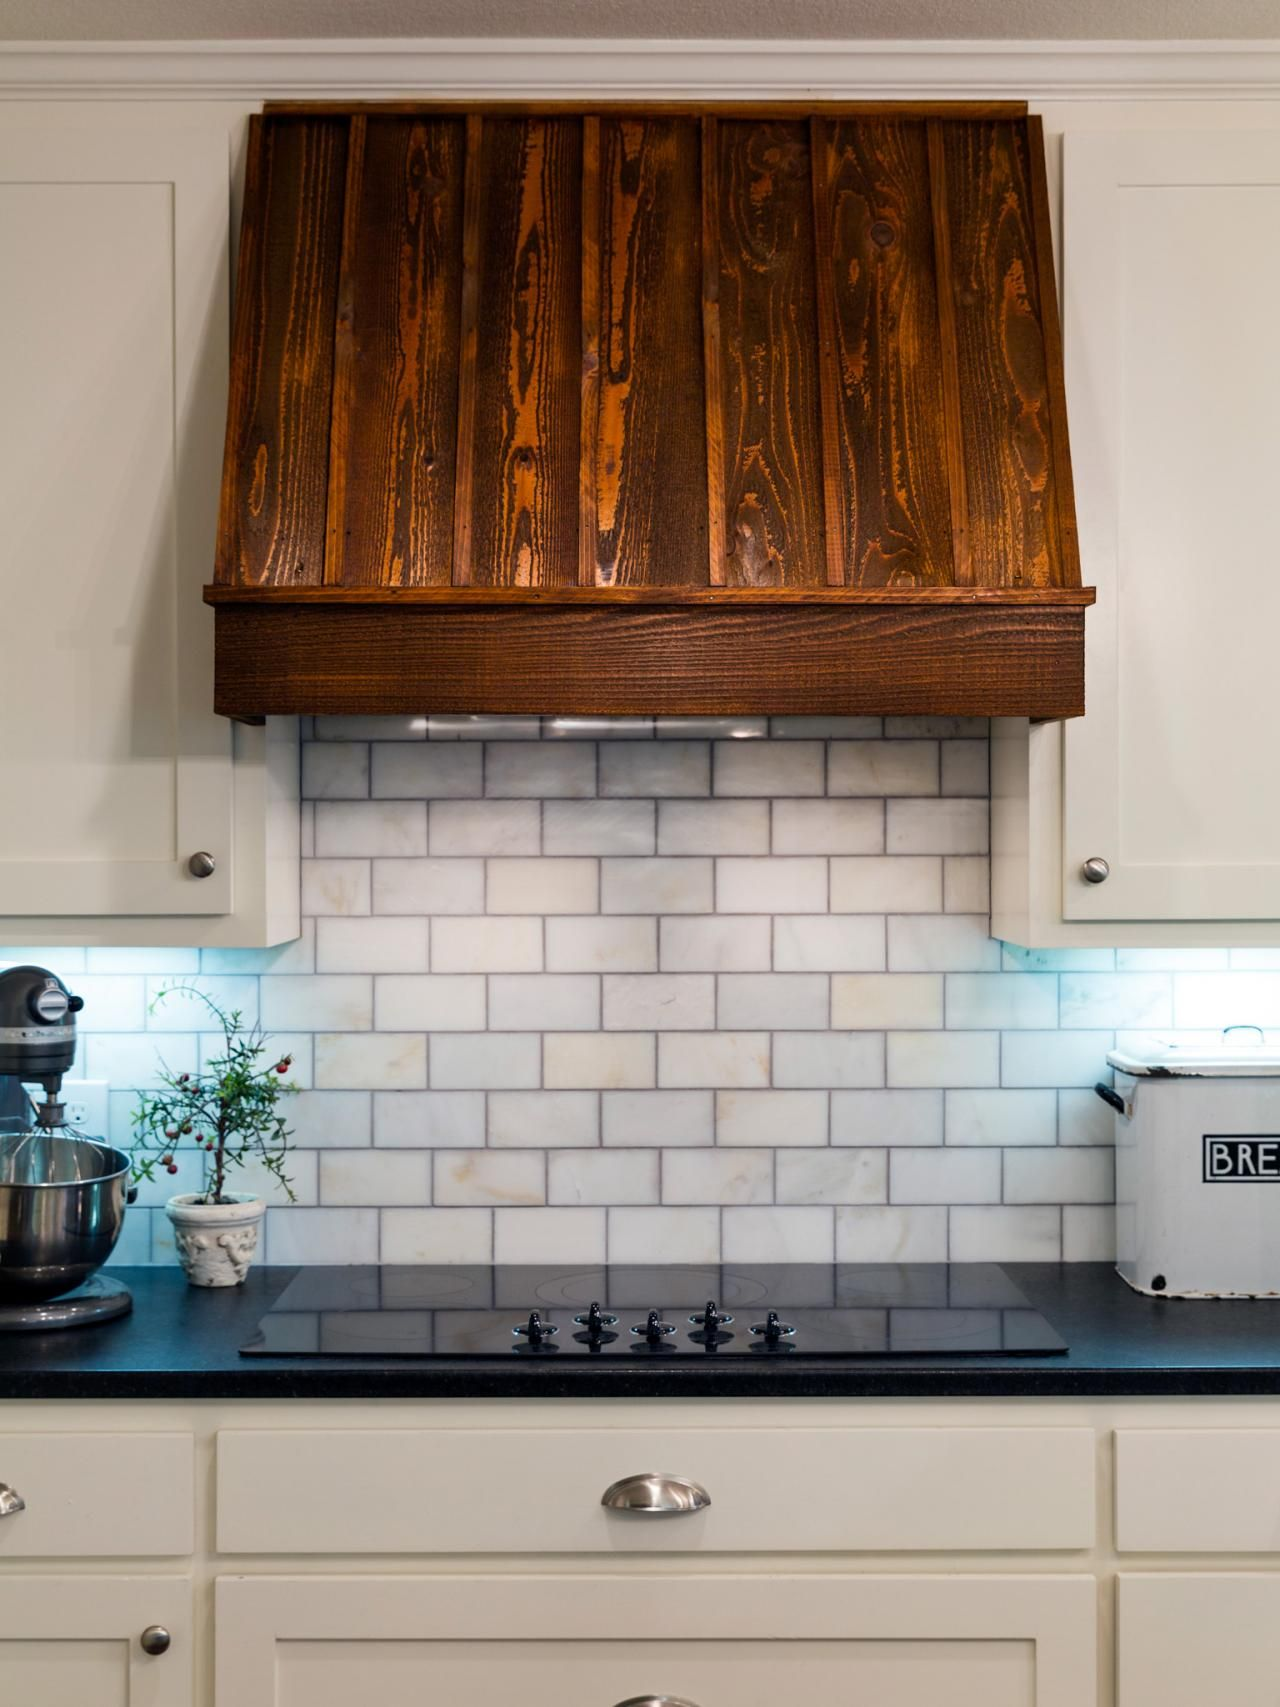 Best Kitchen Gallery: Designers Chip And Joanna Gaines Marry New Technology With Old World of Old Kitchen Stove Hoods on rachelxblog.com